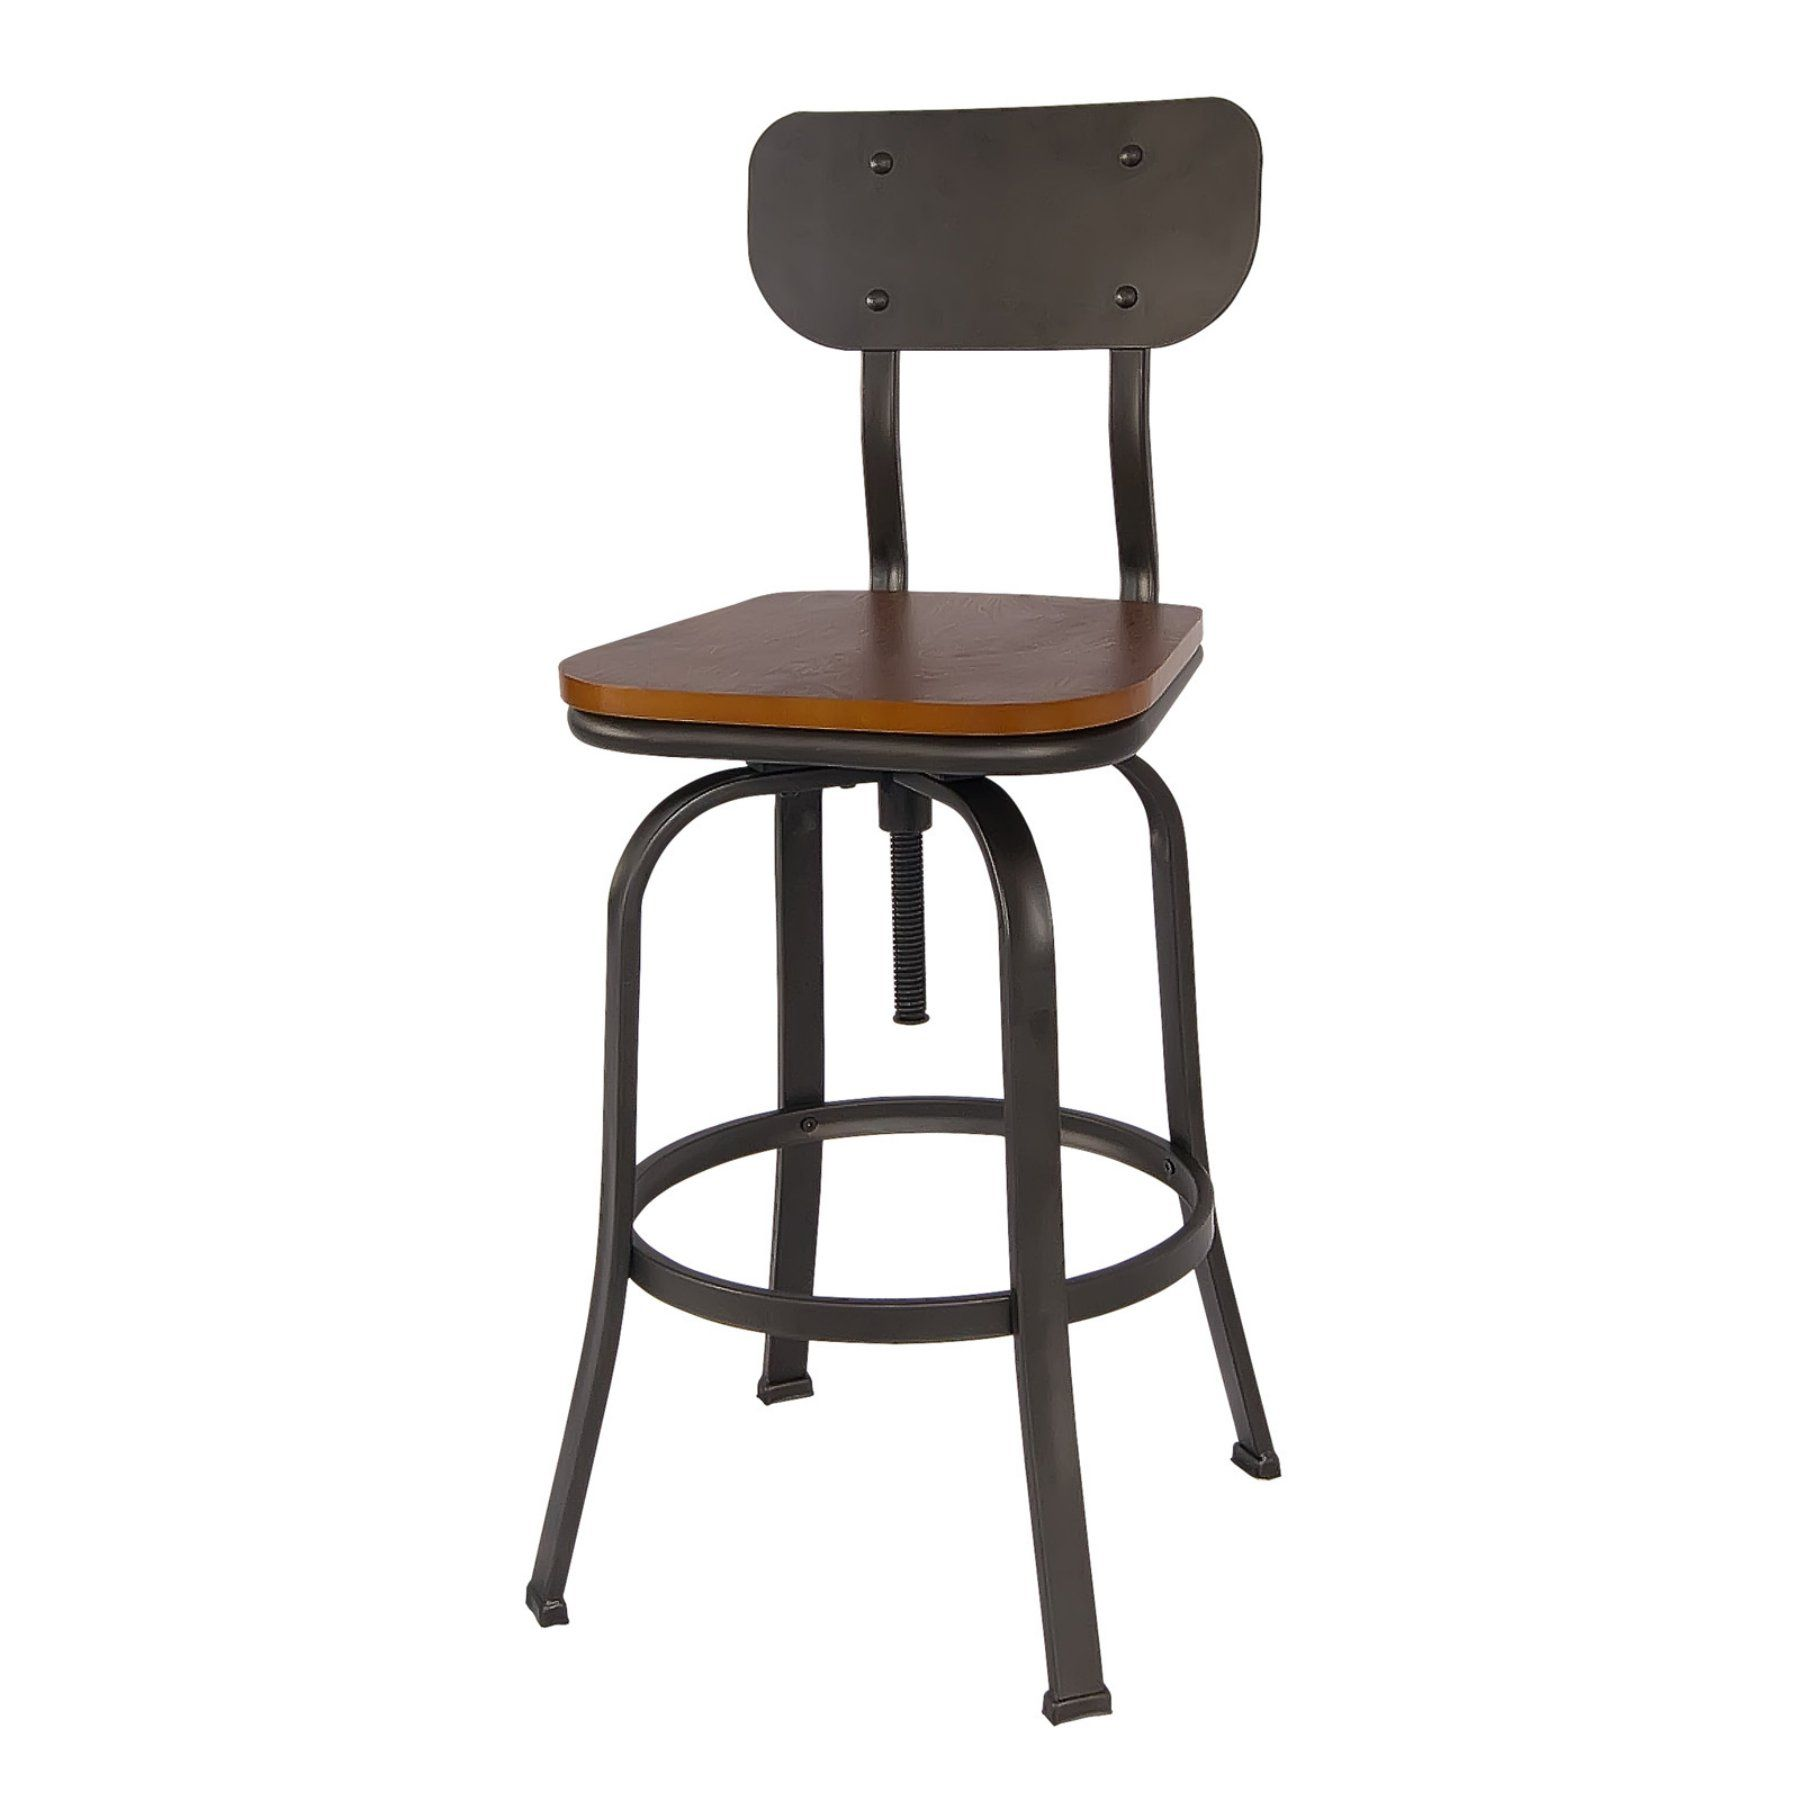 Russ160 Antique Bronze Swivel Bar Stool  Set Of 2